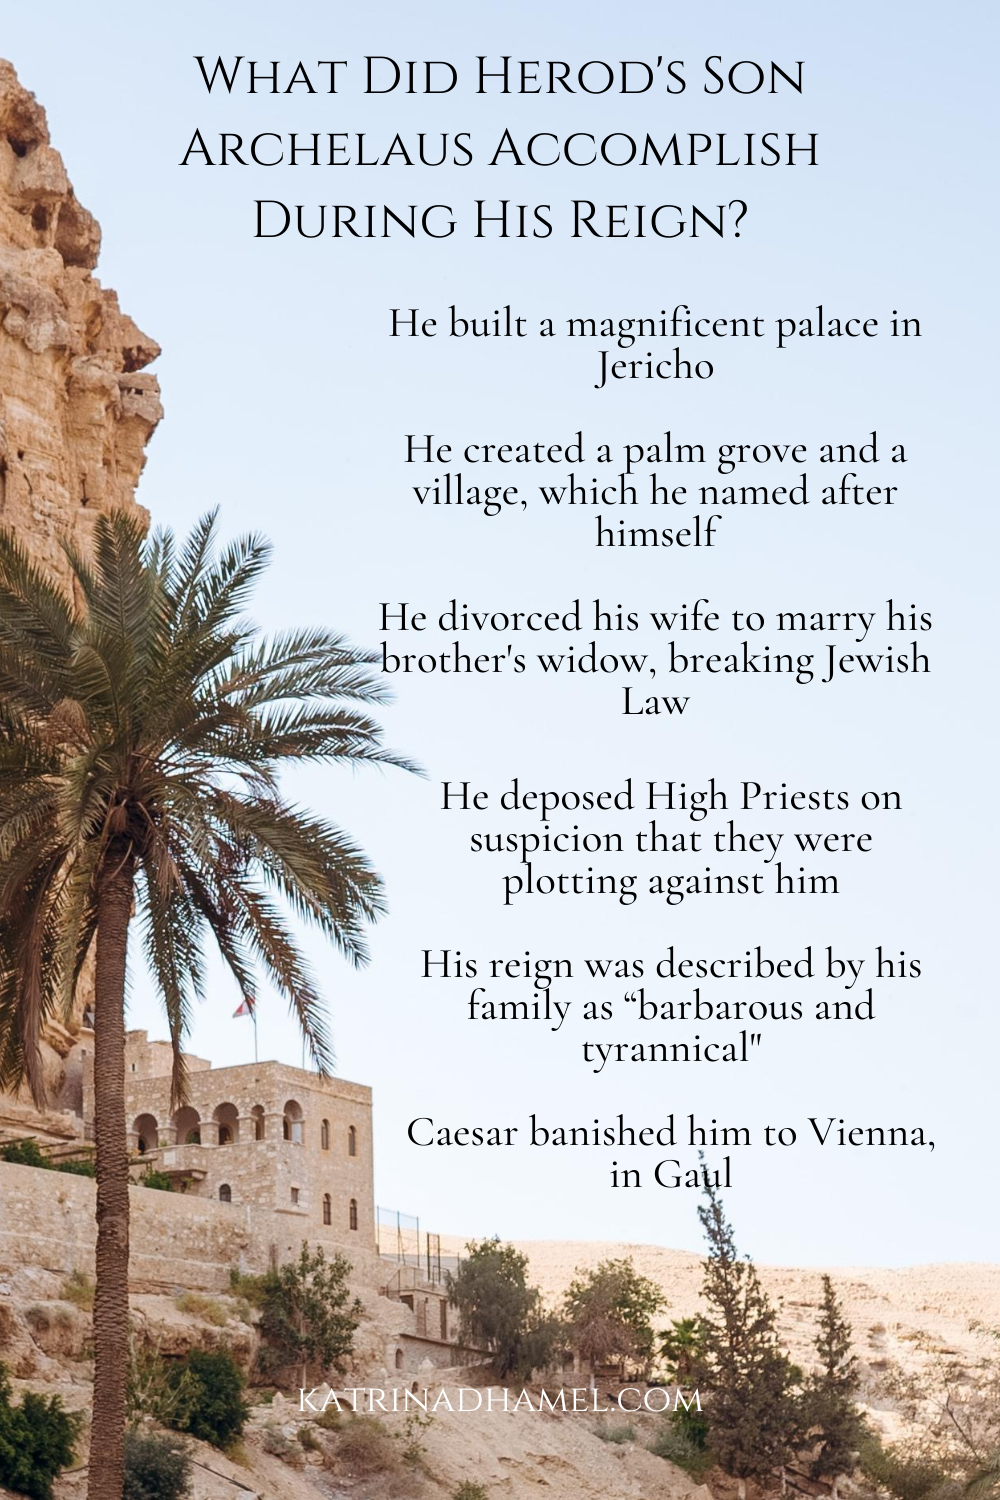 What did Herod's son Archelaus accomplish during his reign?